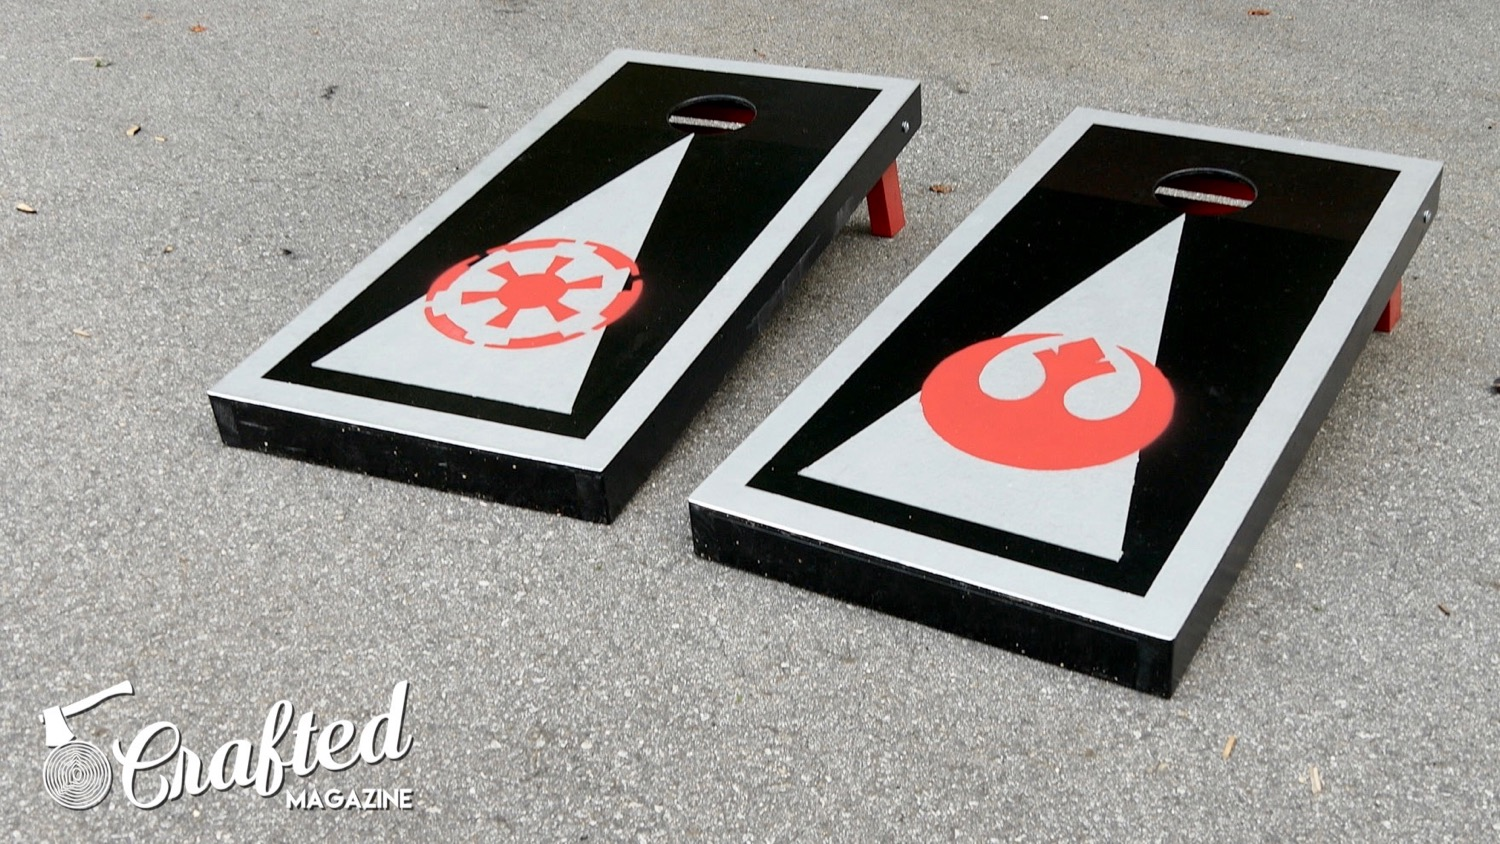 Star-Wars-Cornhole-Boards-How-To-DIY-28.jpg